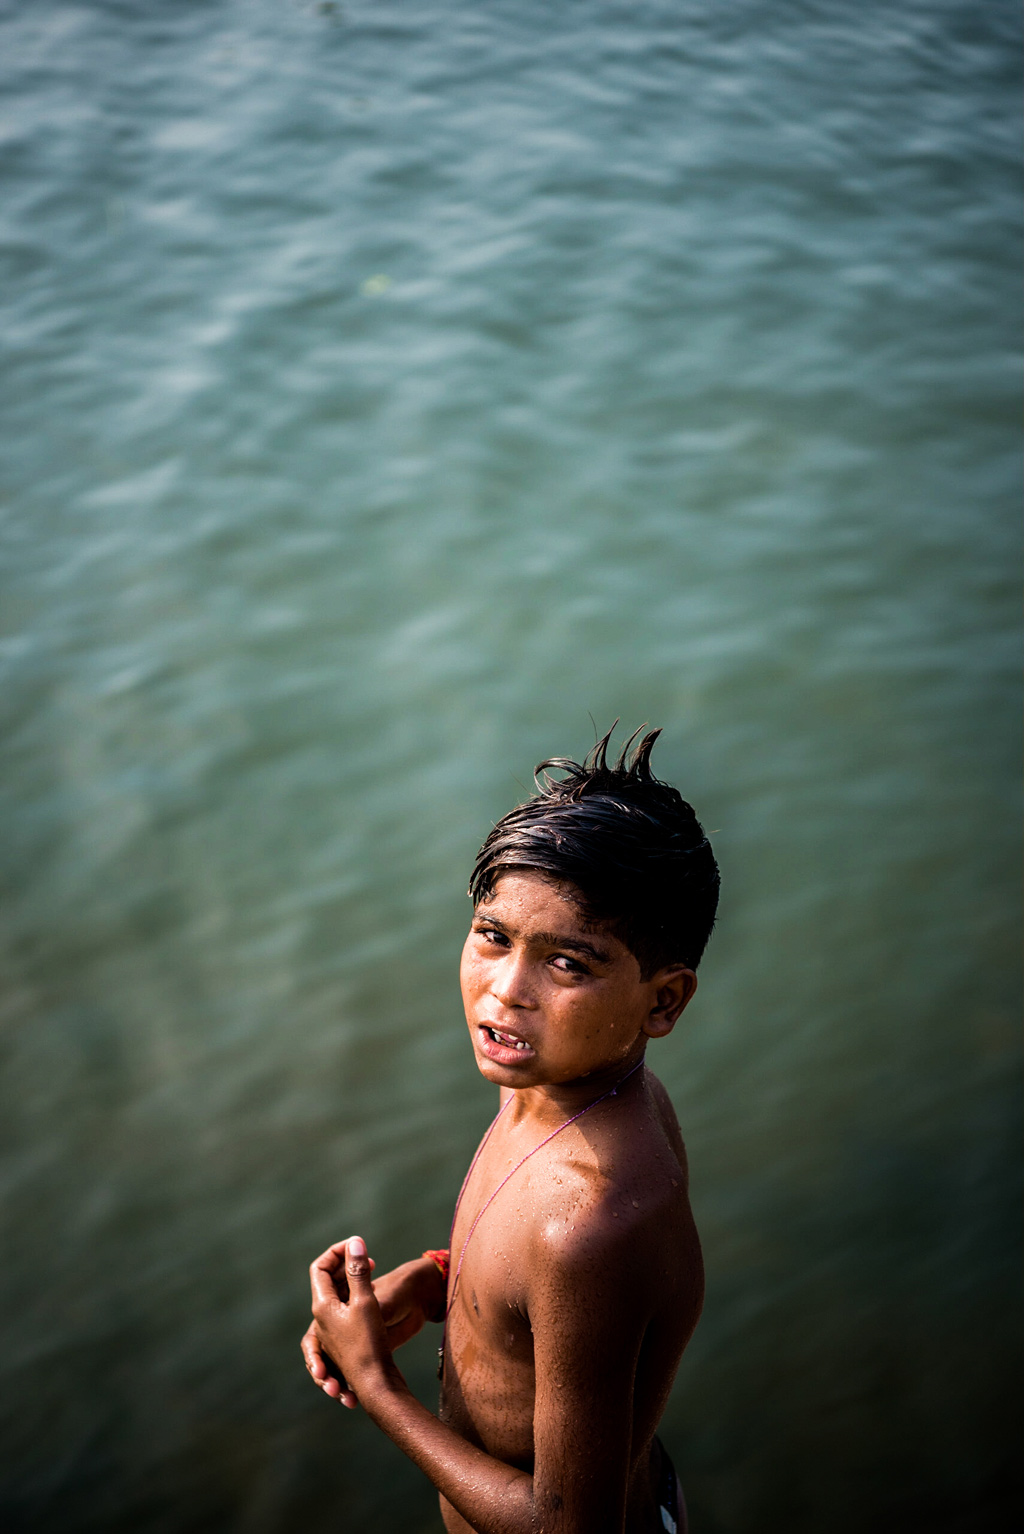 A local boy makes some pocket money by asking visitors to throw a coin into the water, which he dives in and fishes out.